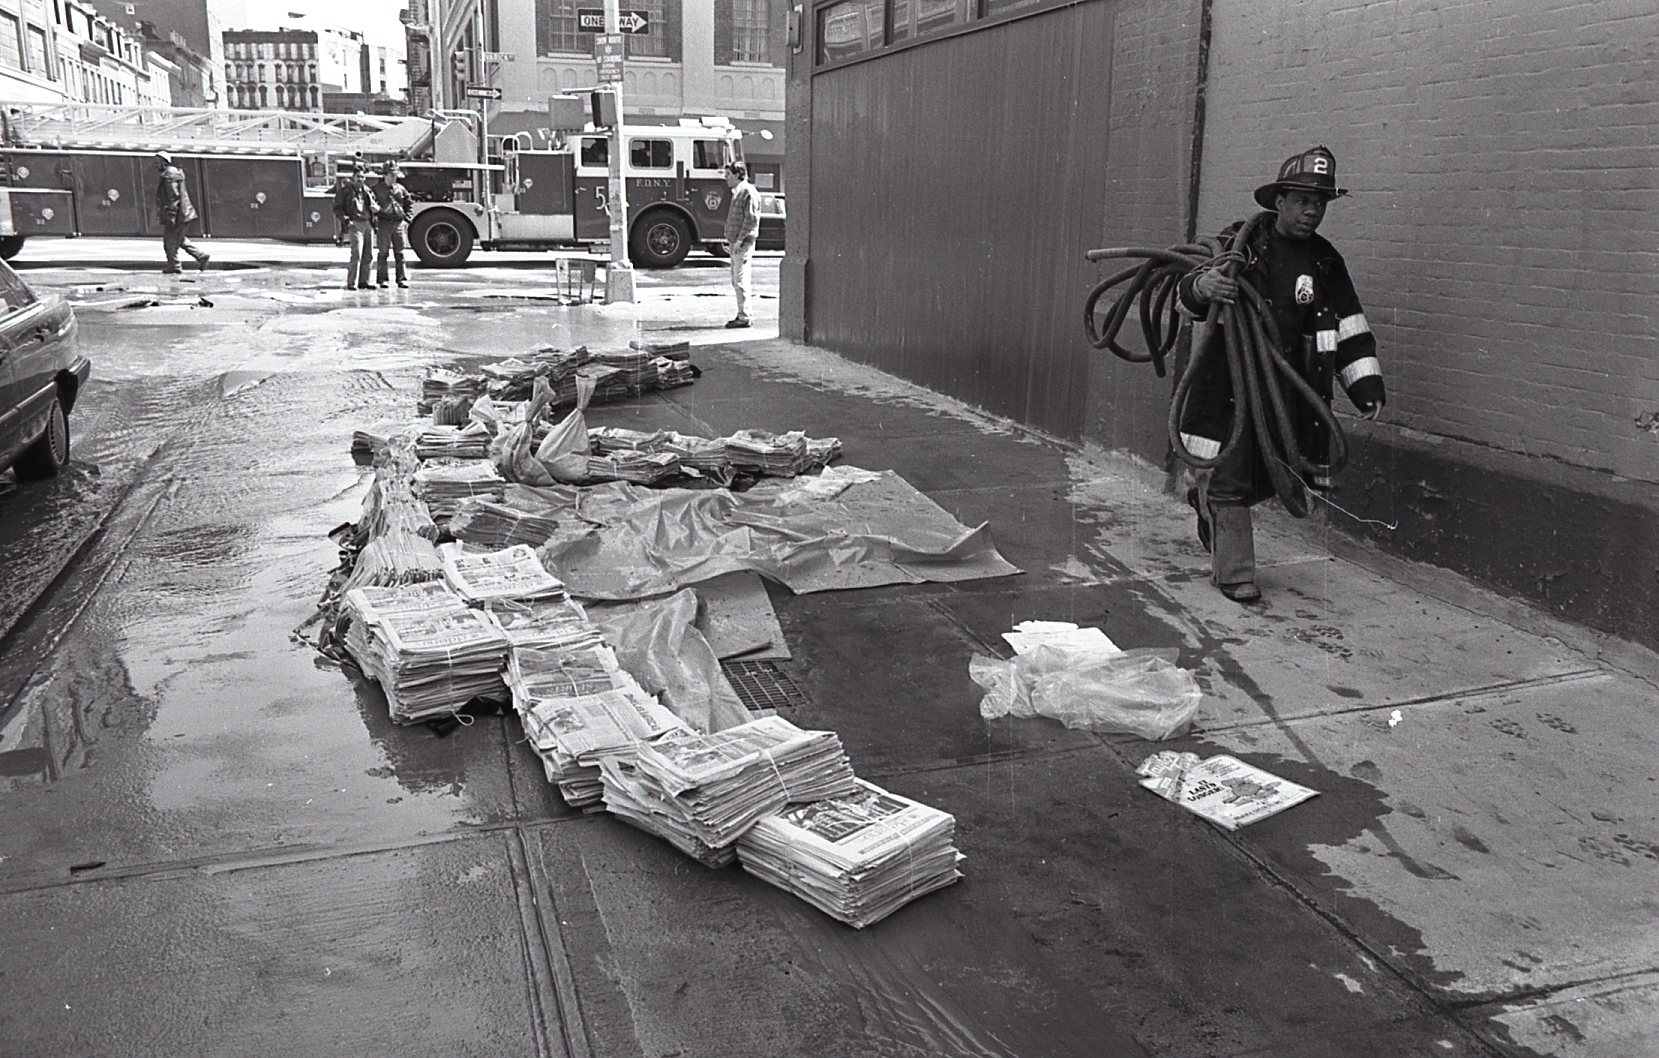 A flood at El Diario-La Prensa offices in April 1992 destroyed much of the Spanish-language daily's photographic archive.